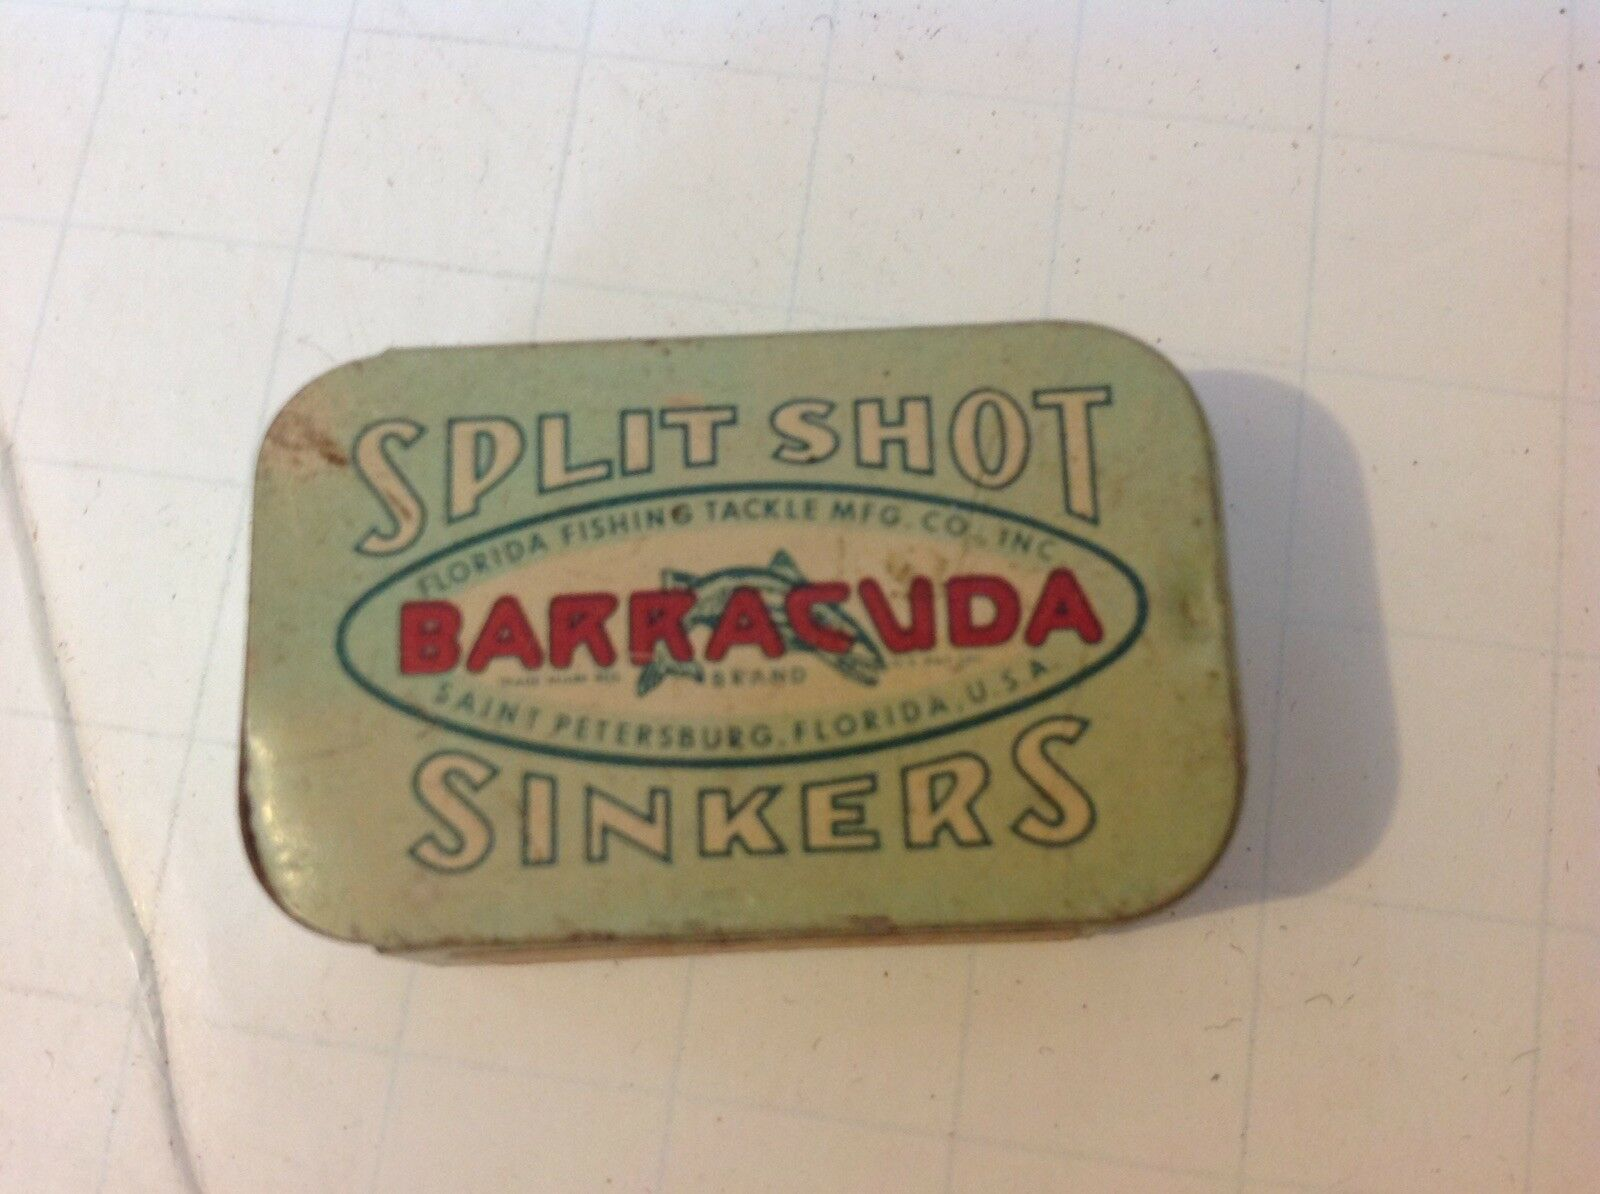 Barracuda Split Shot Sinkers Vintage Tin With Sinkers, St. Petersburg, Florida